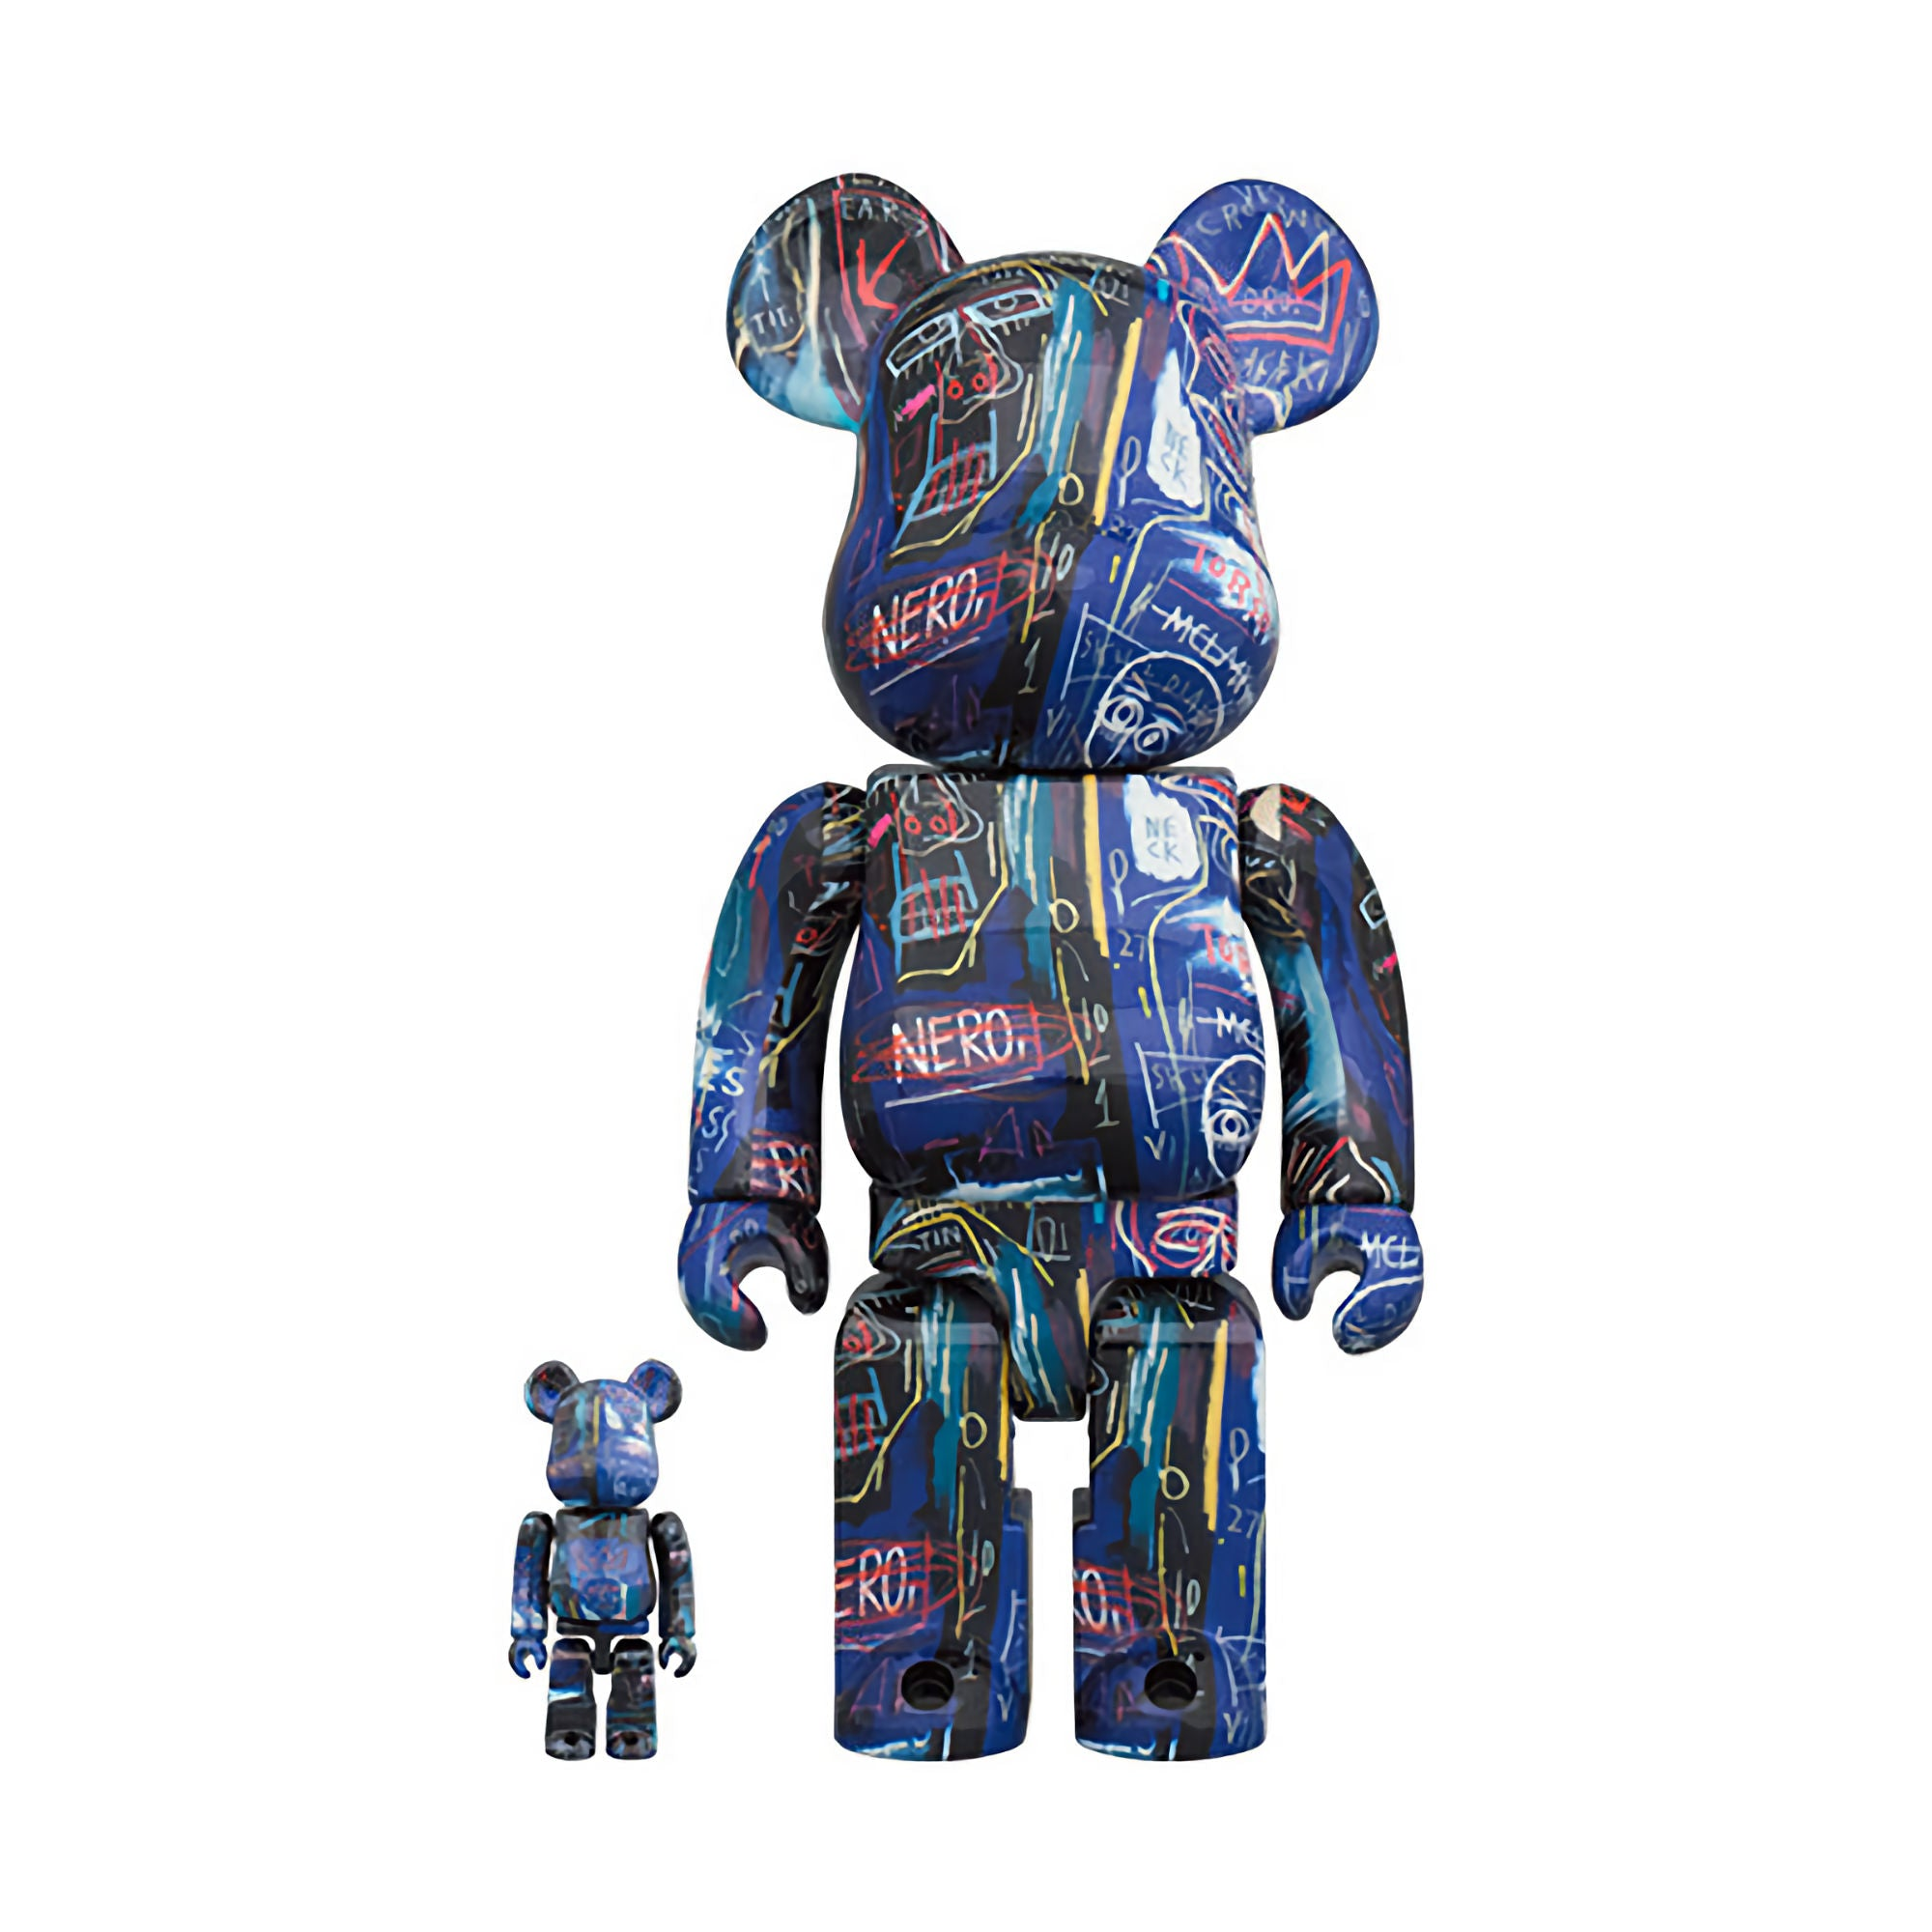 BE@RBRICK Jean Michel Basquiat #7 100% & 400% (To be shipped in late March 2021)